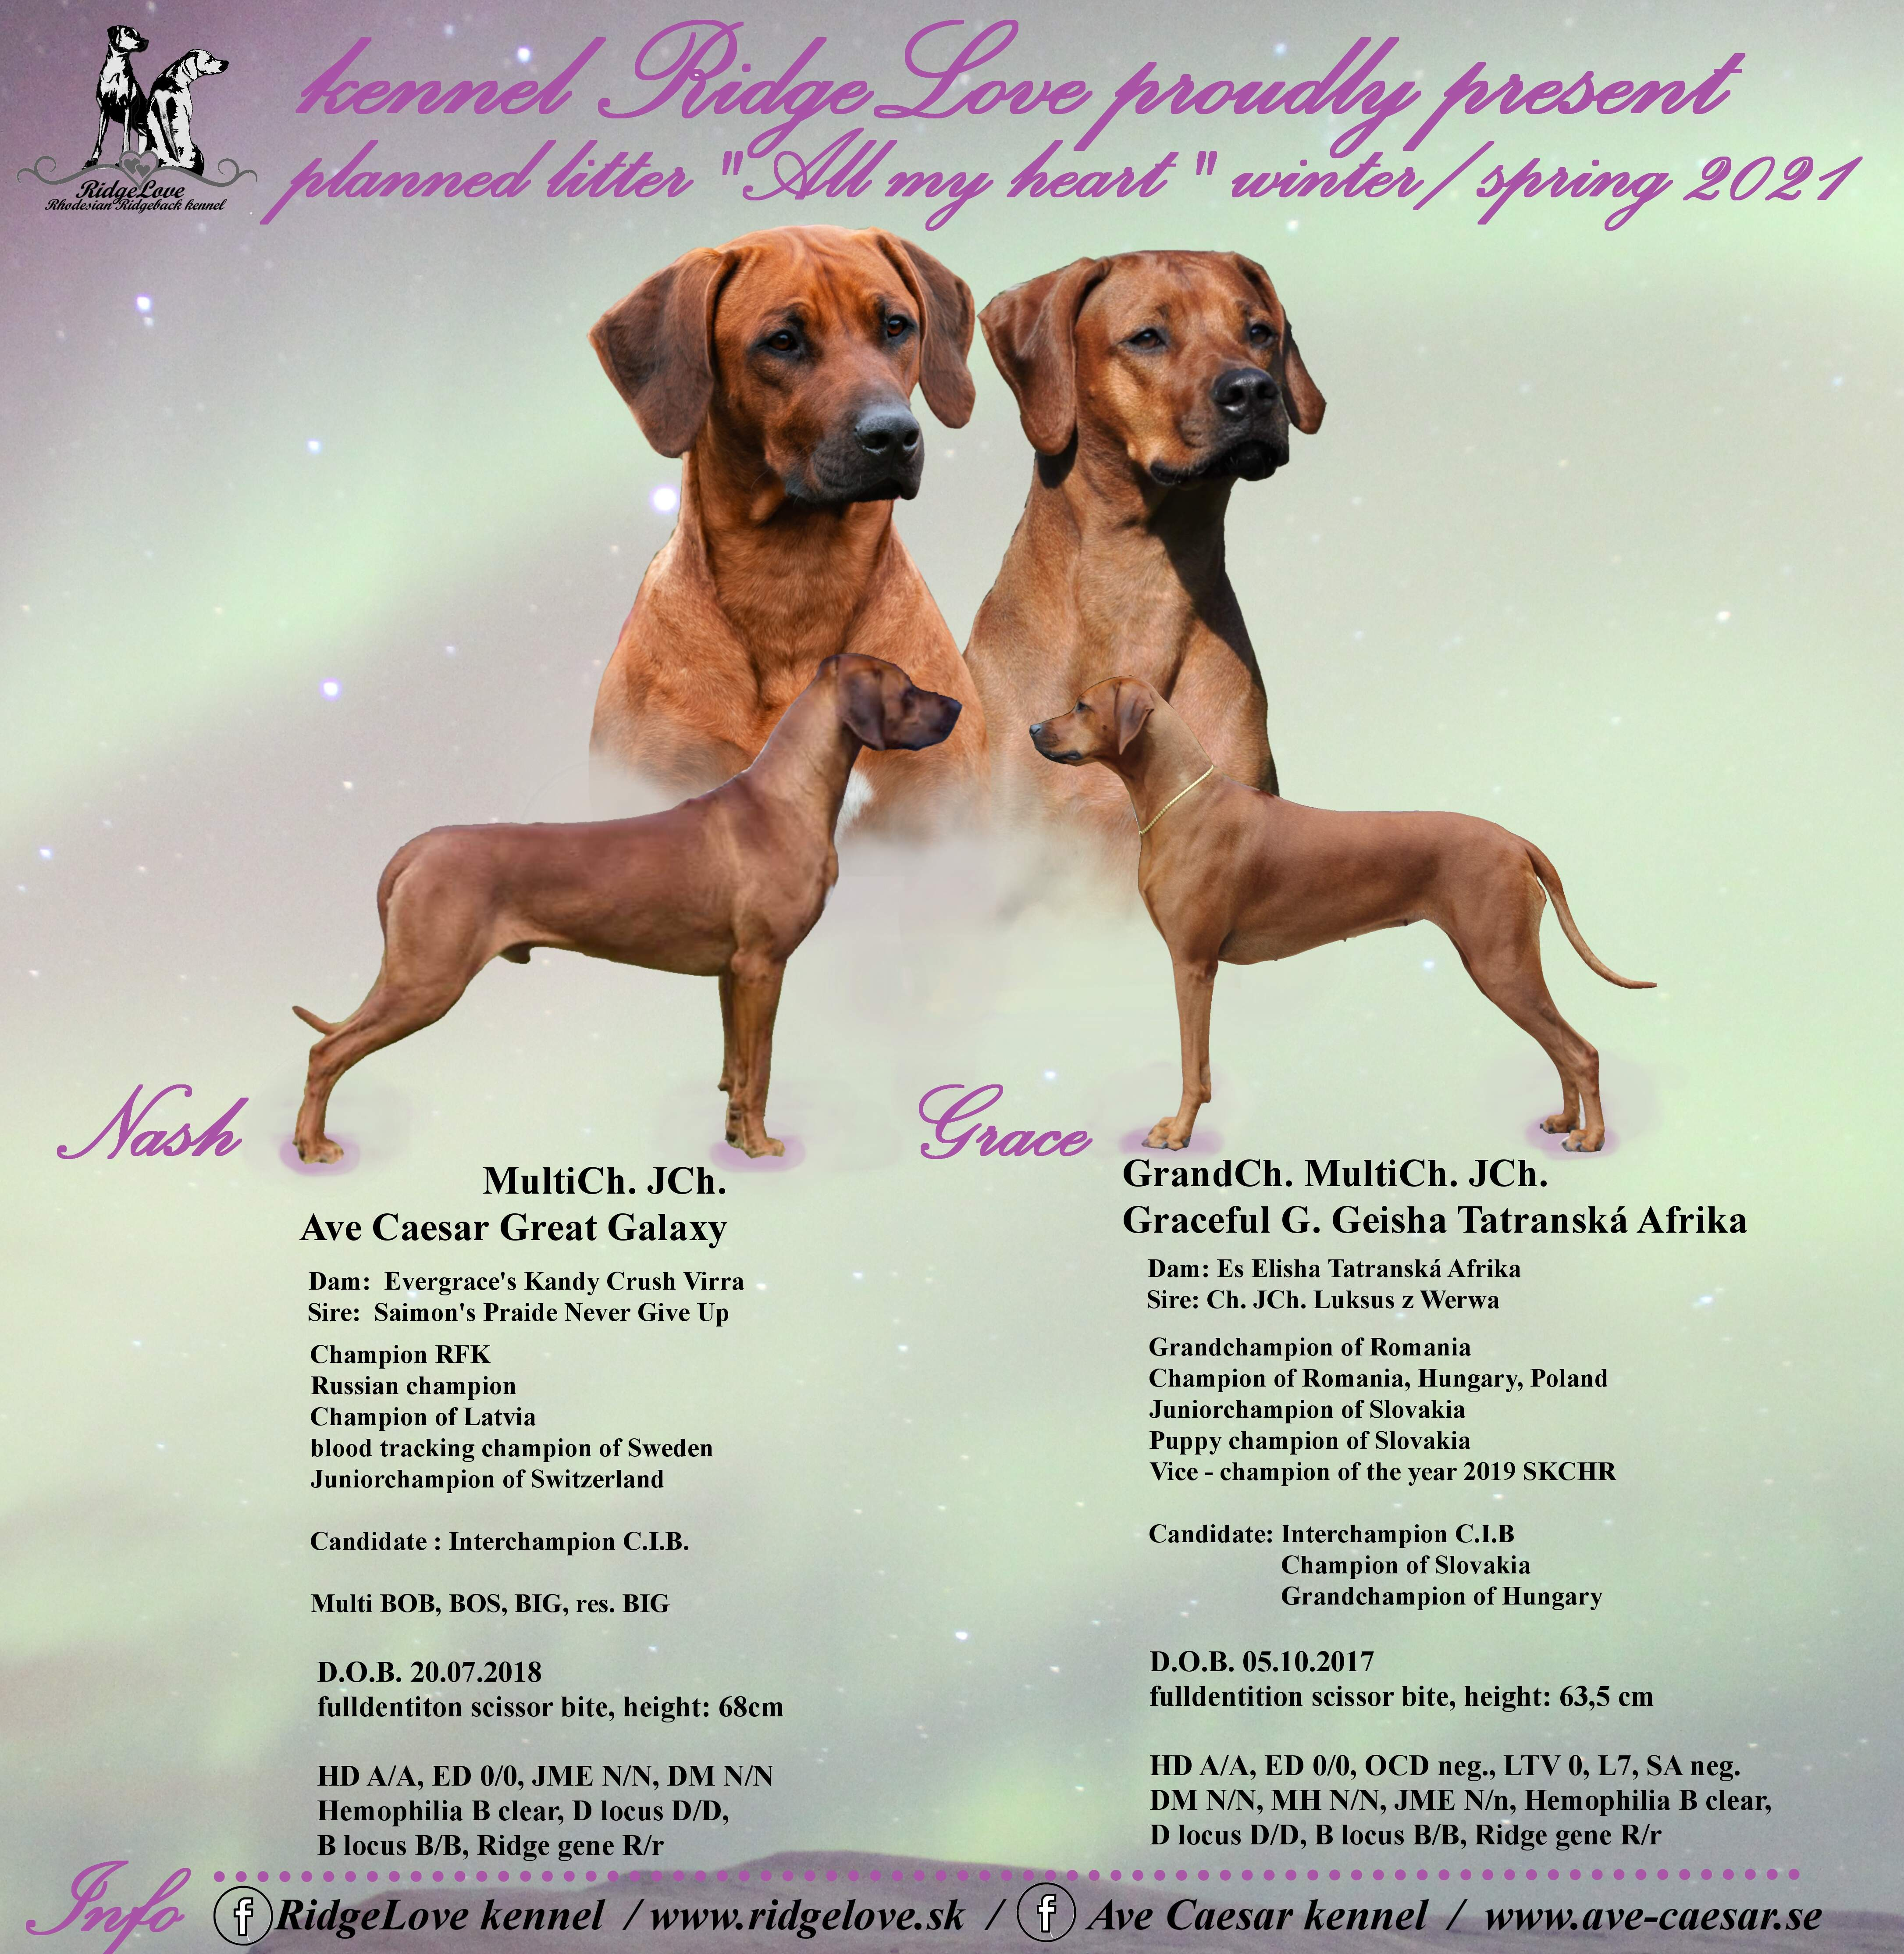 puppies Nash and Grace, rhodesian ridgeback puppies, Graceful G Geisha, Ave Caesar Great Galaxy puppies